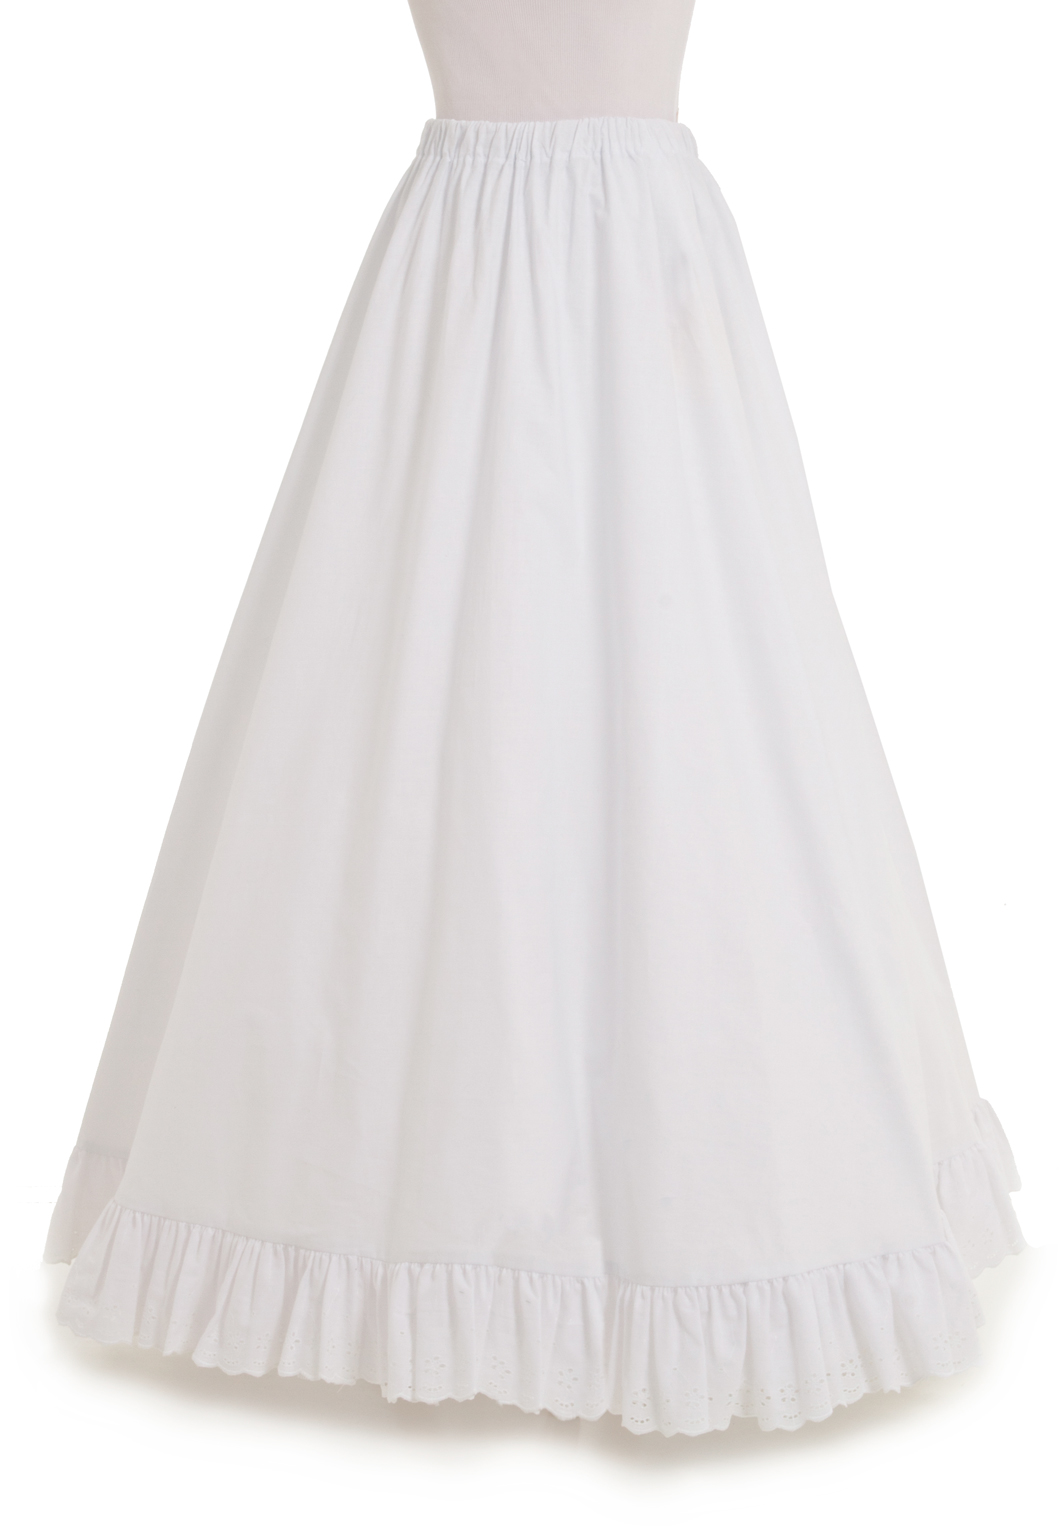 Cheyenne Old West Petticoat